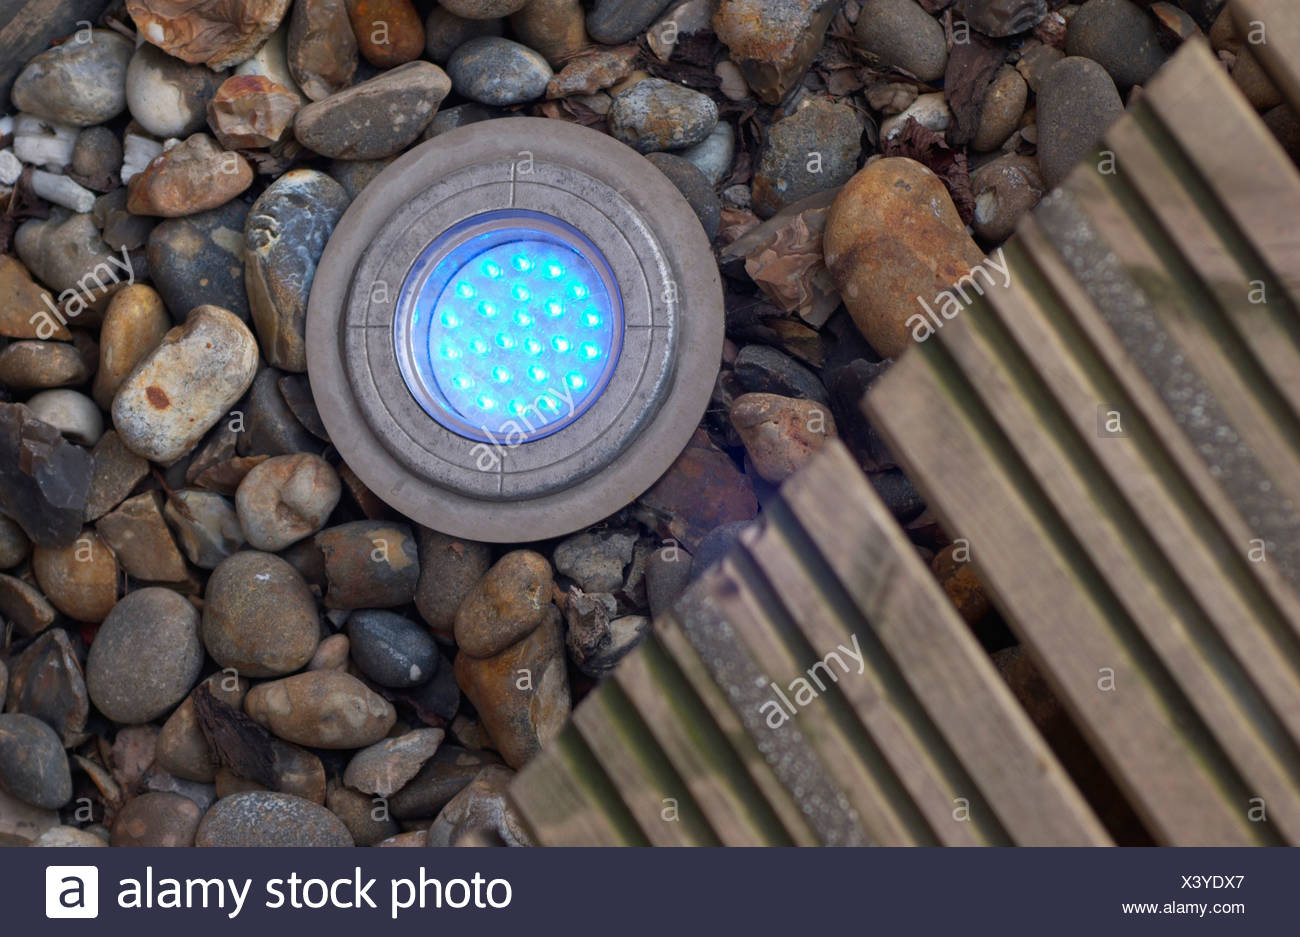 blue LED uplighter recessed into a pebble border - Stock Image